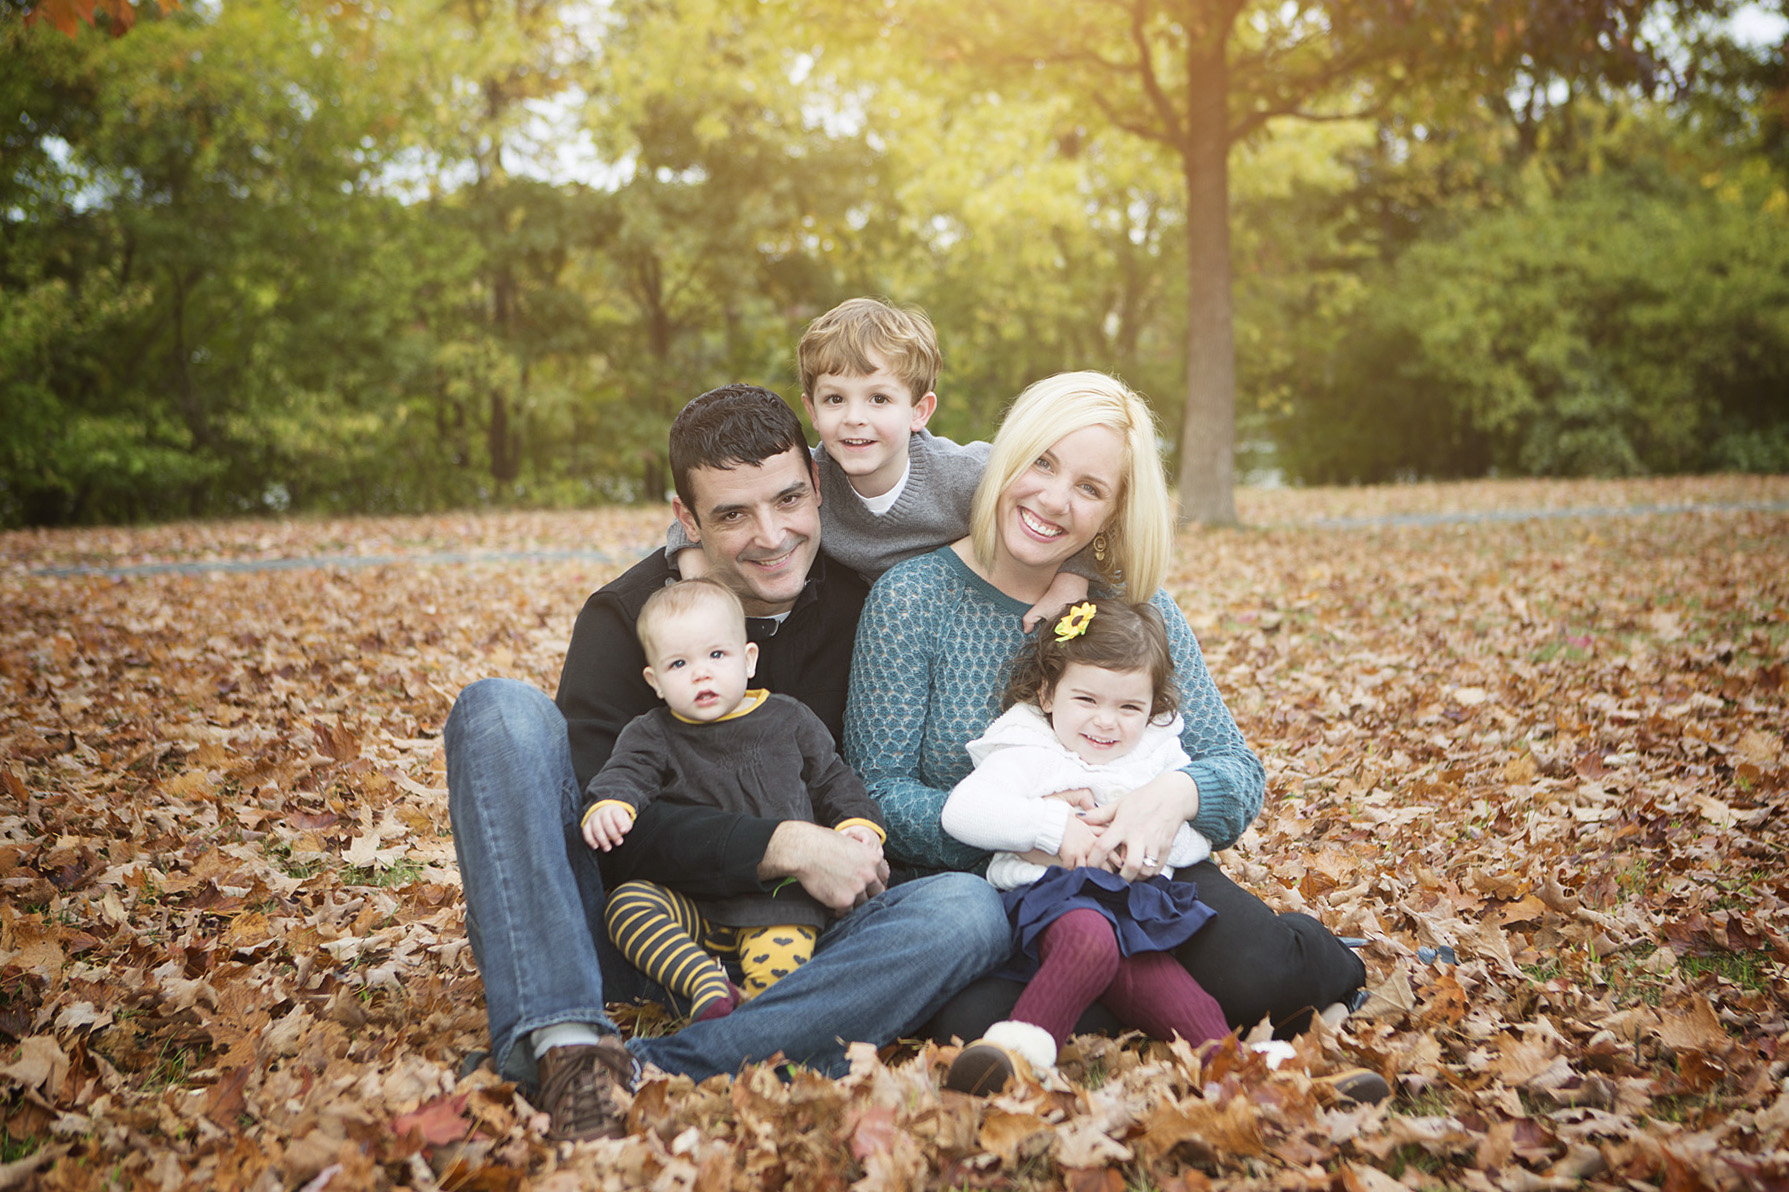 Outdoor Fall Family Clothing Ideas 6 Tips · Crabapple